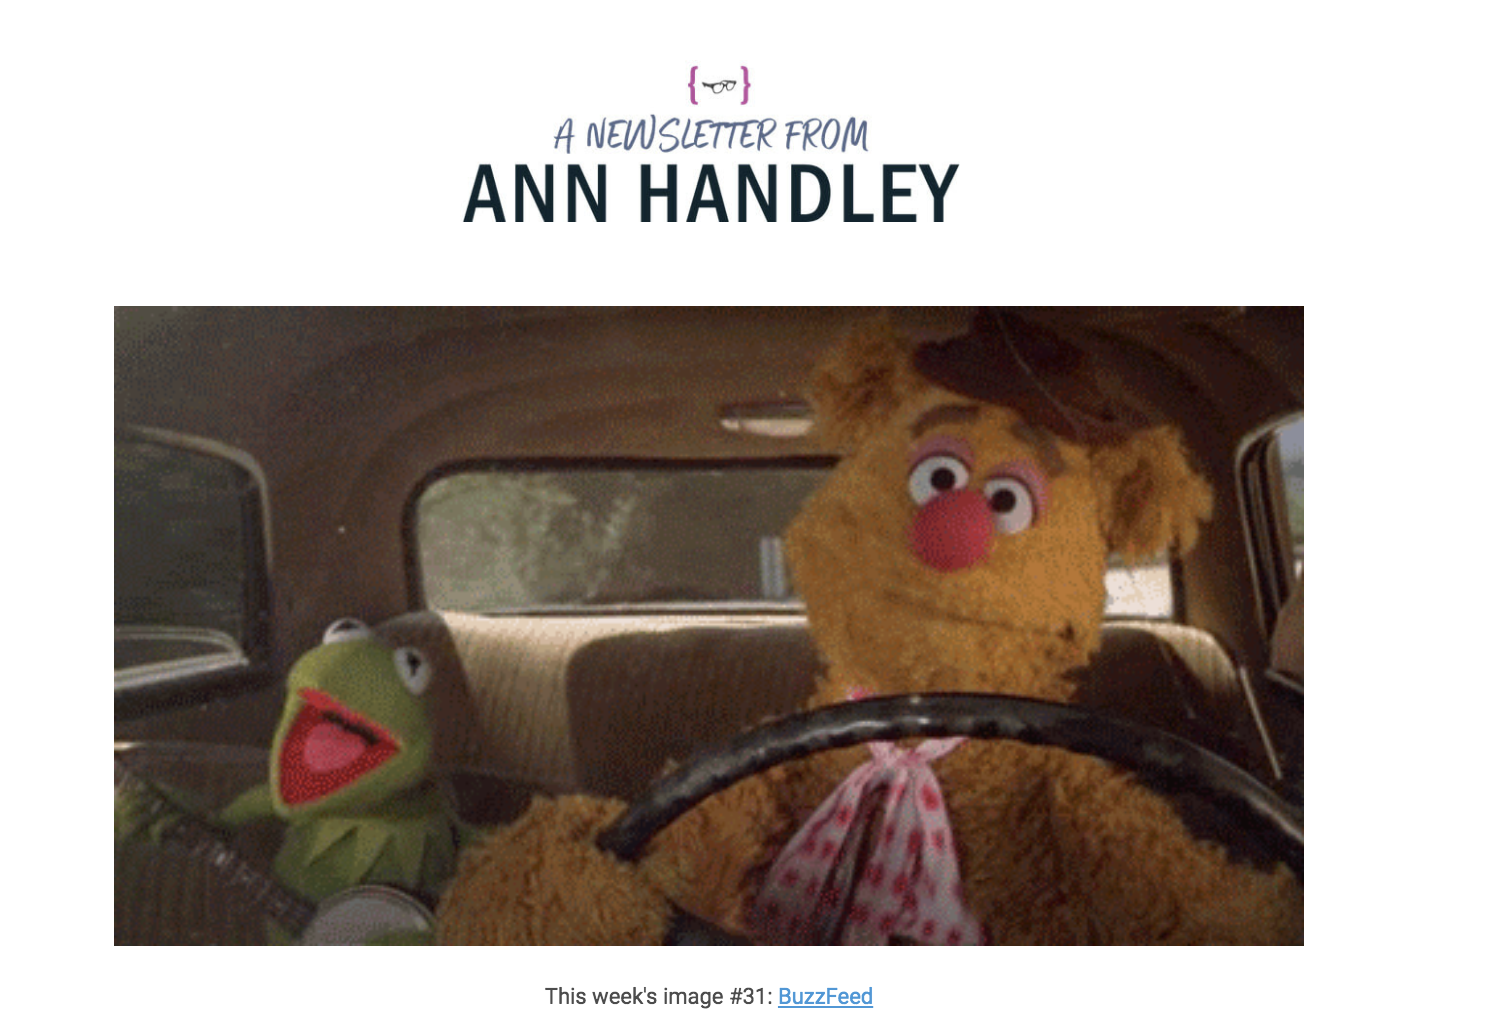 Ann_Handley_Newsletter_example_influence